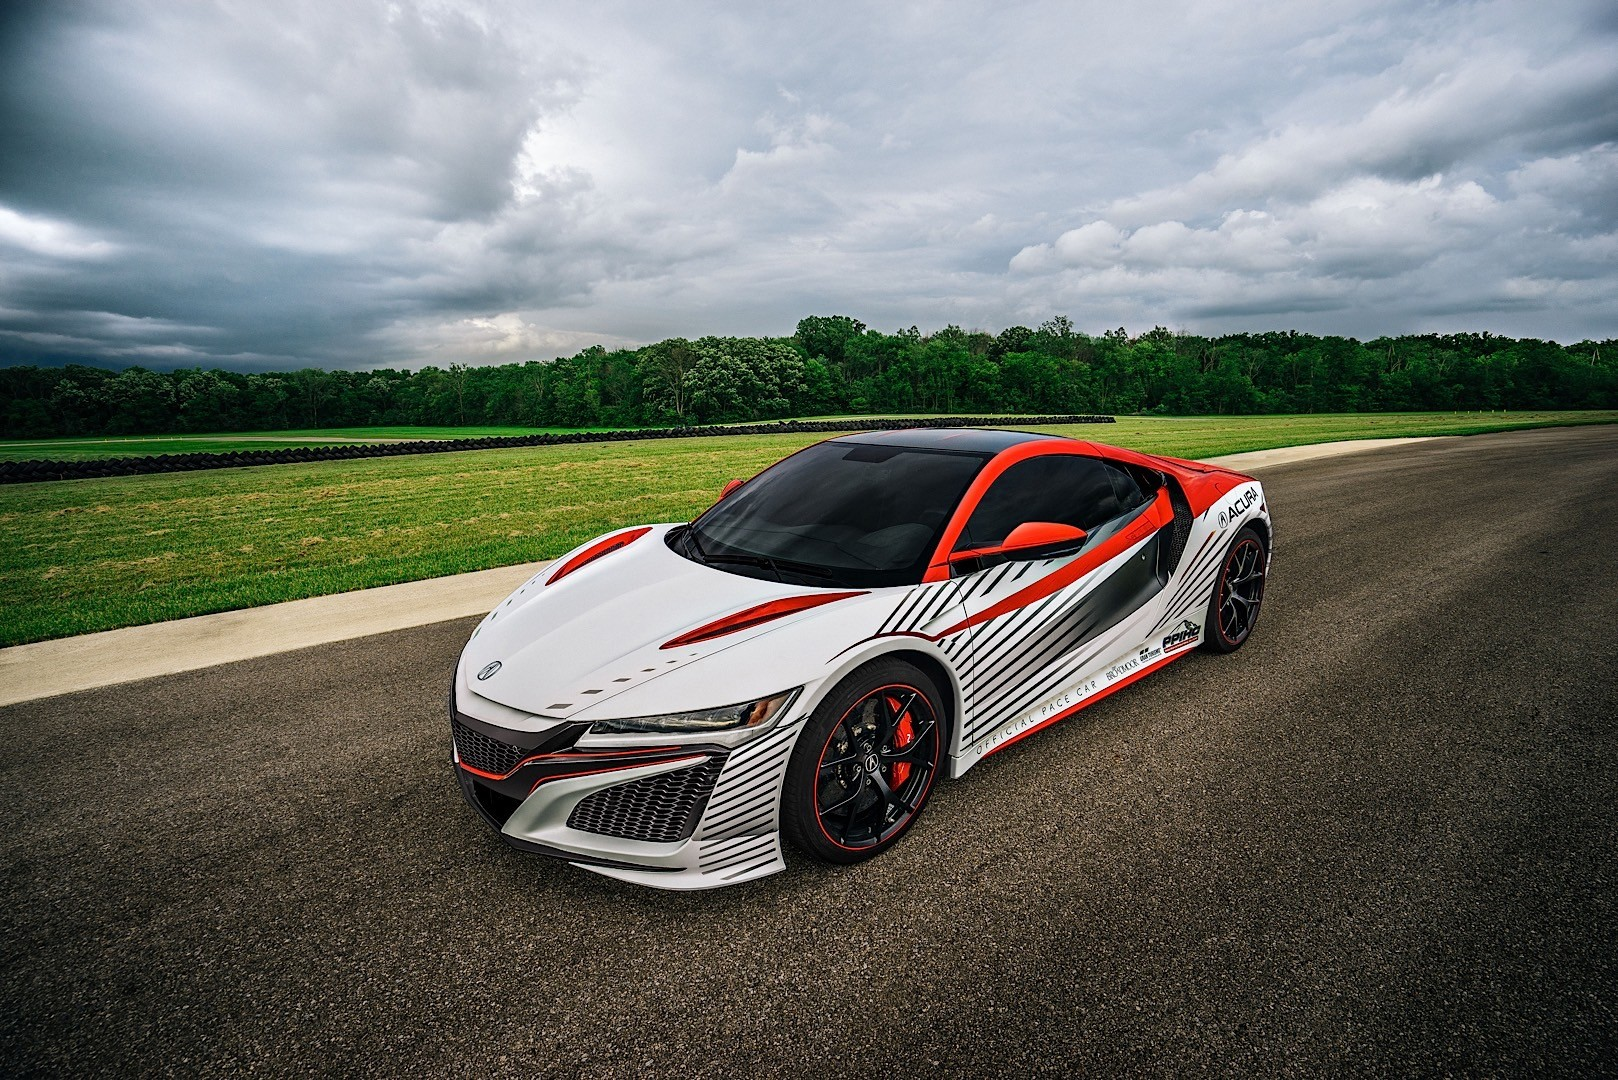 Acura Plans to Build a Race-Version NSX, Most Likely Coming in 2017 - autoevolution